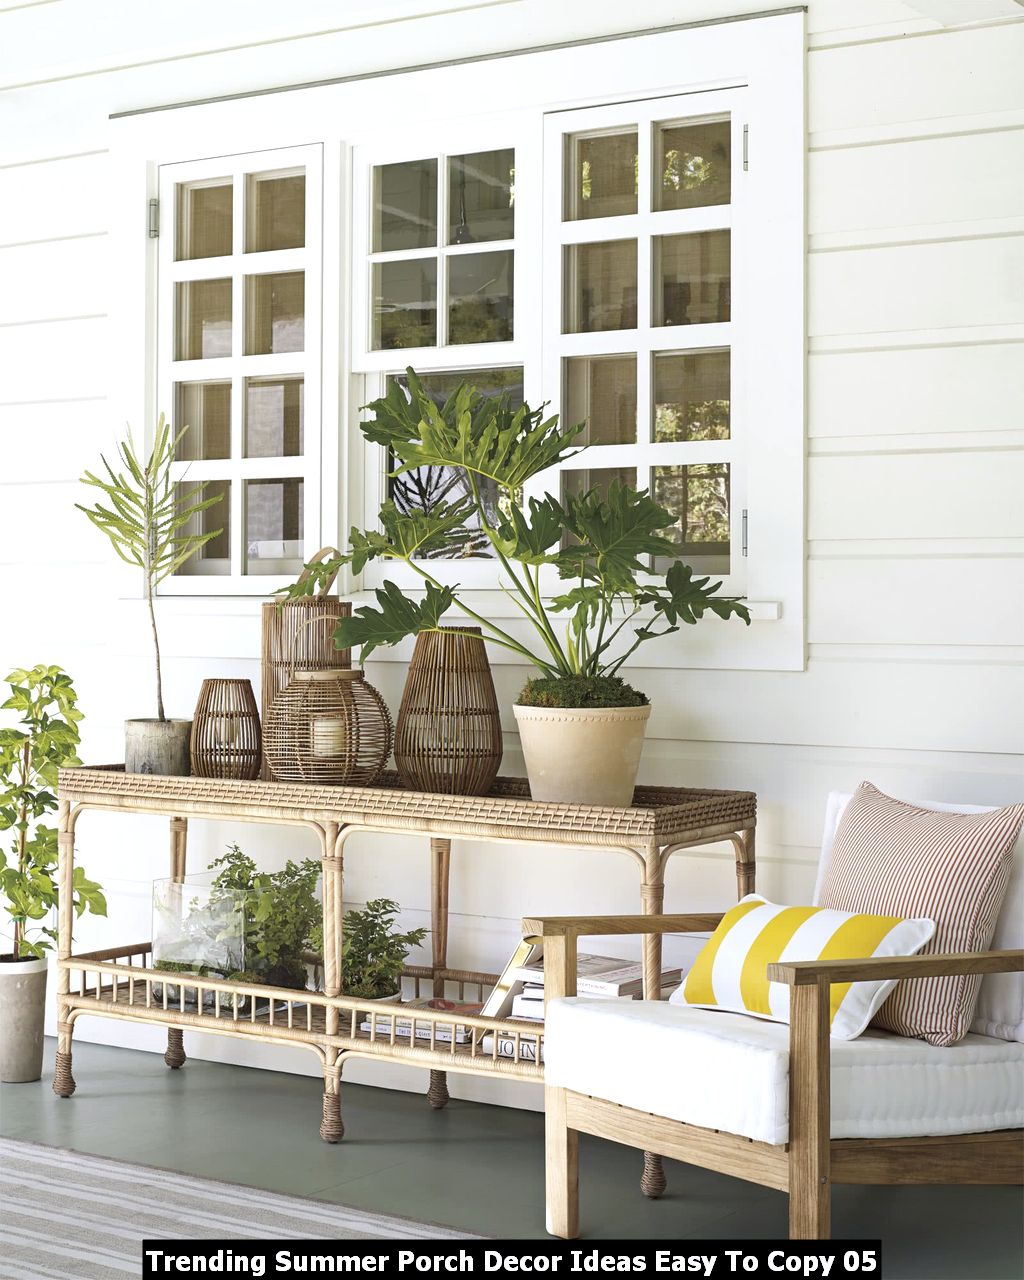 Trending Summer Porch Decor Ideas Easy To Copy 05